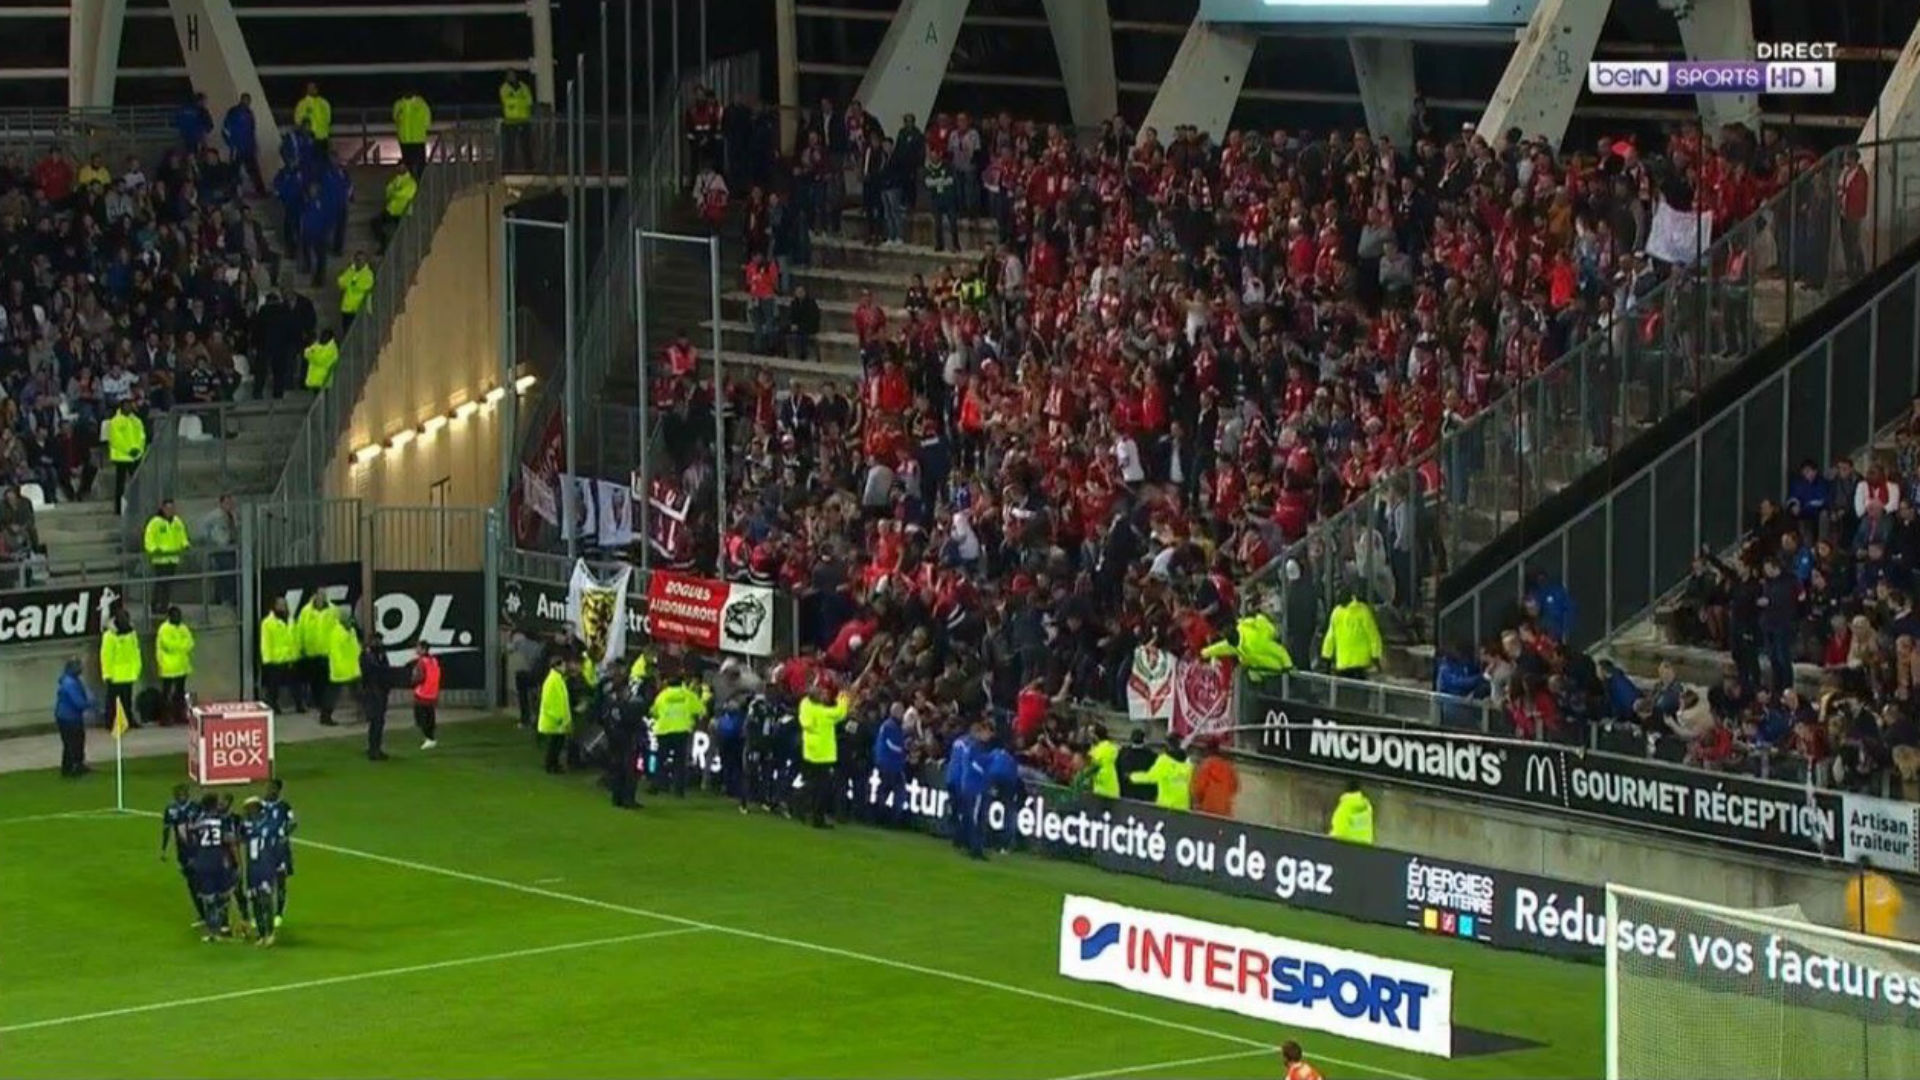 Fans taking pictures with cell phone behind barrier stock photo - Amiens Lille Ligue 1 30092017